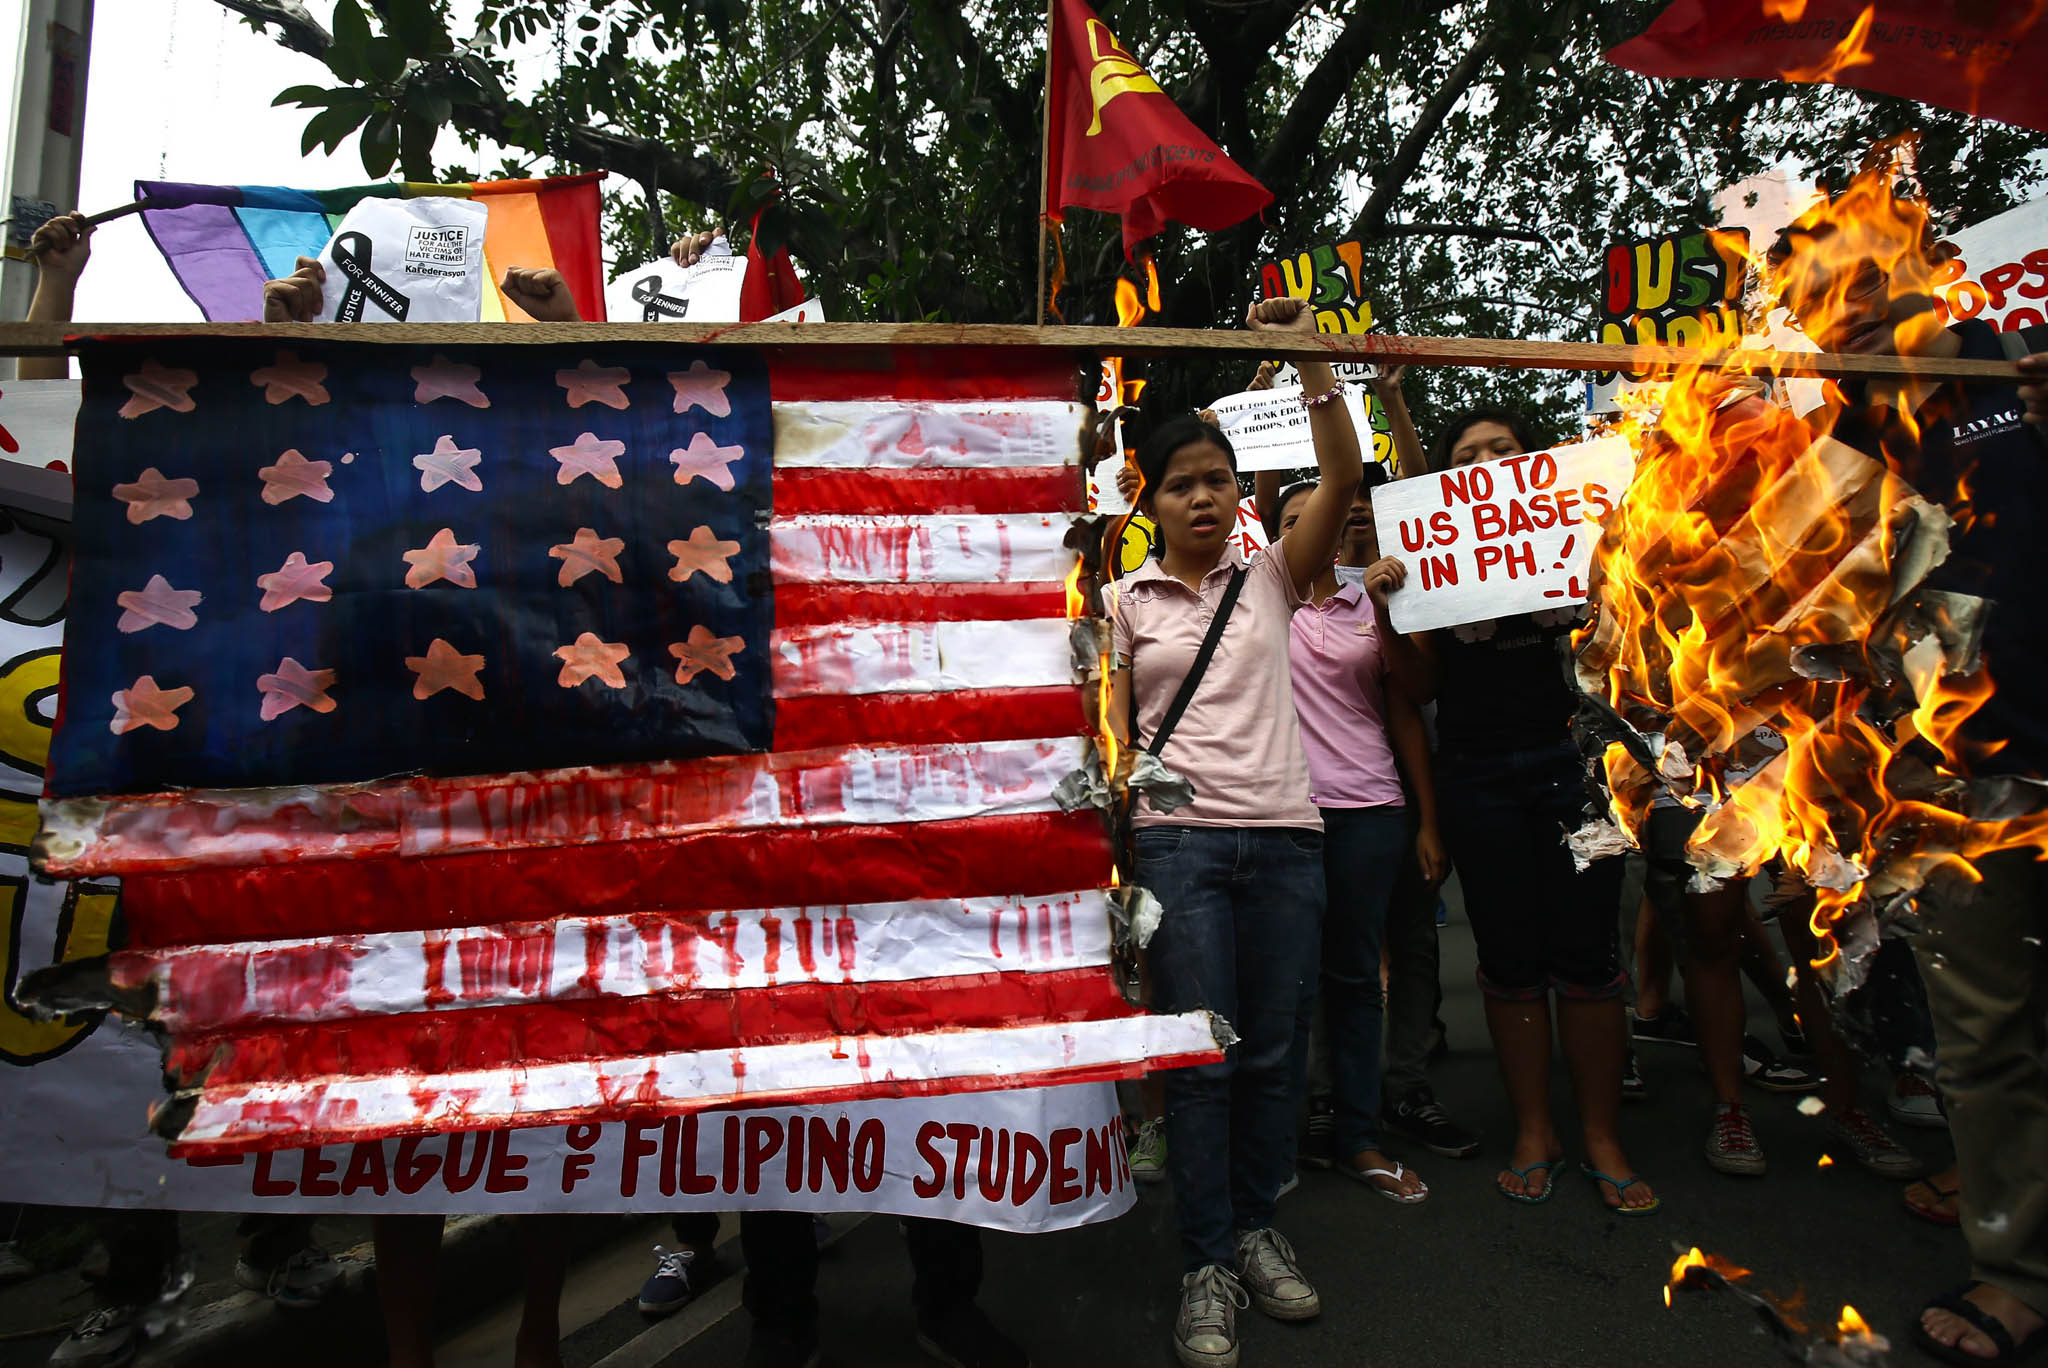 Filipino student protesters burn a mock US flag during a rally outside the US embassy in Manila. The group stormed the US embassy demanding to hand over a US Marine who allegedly killed a transgender person in northern Philippines.